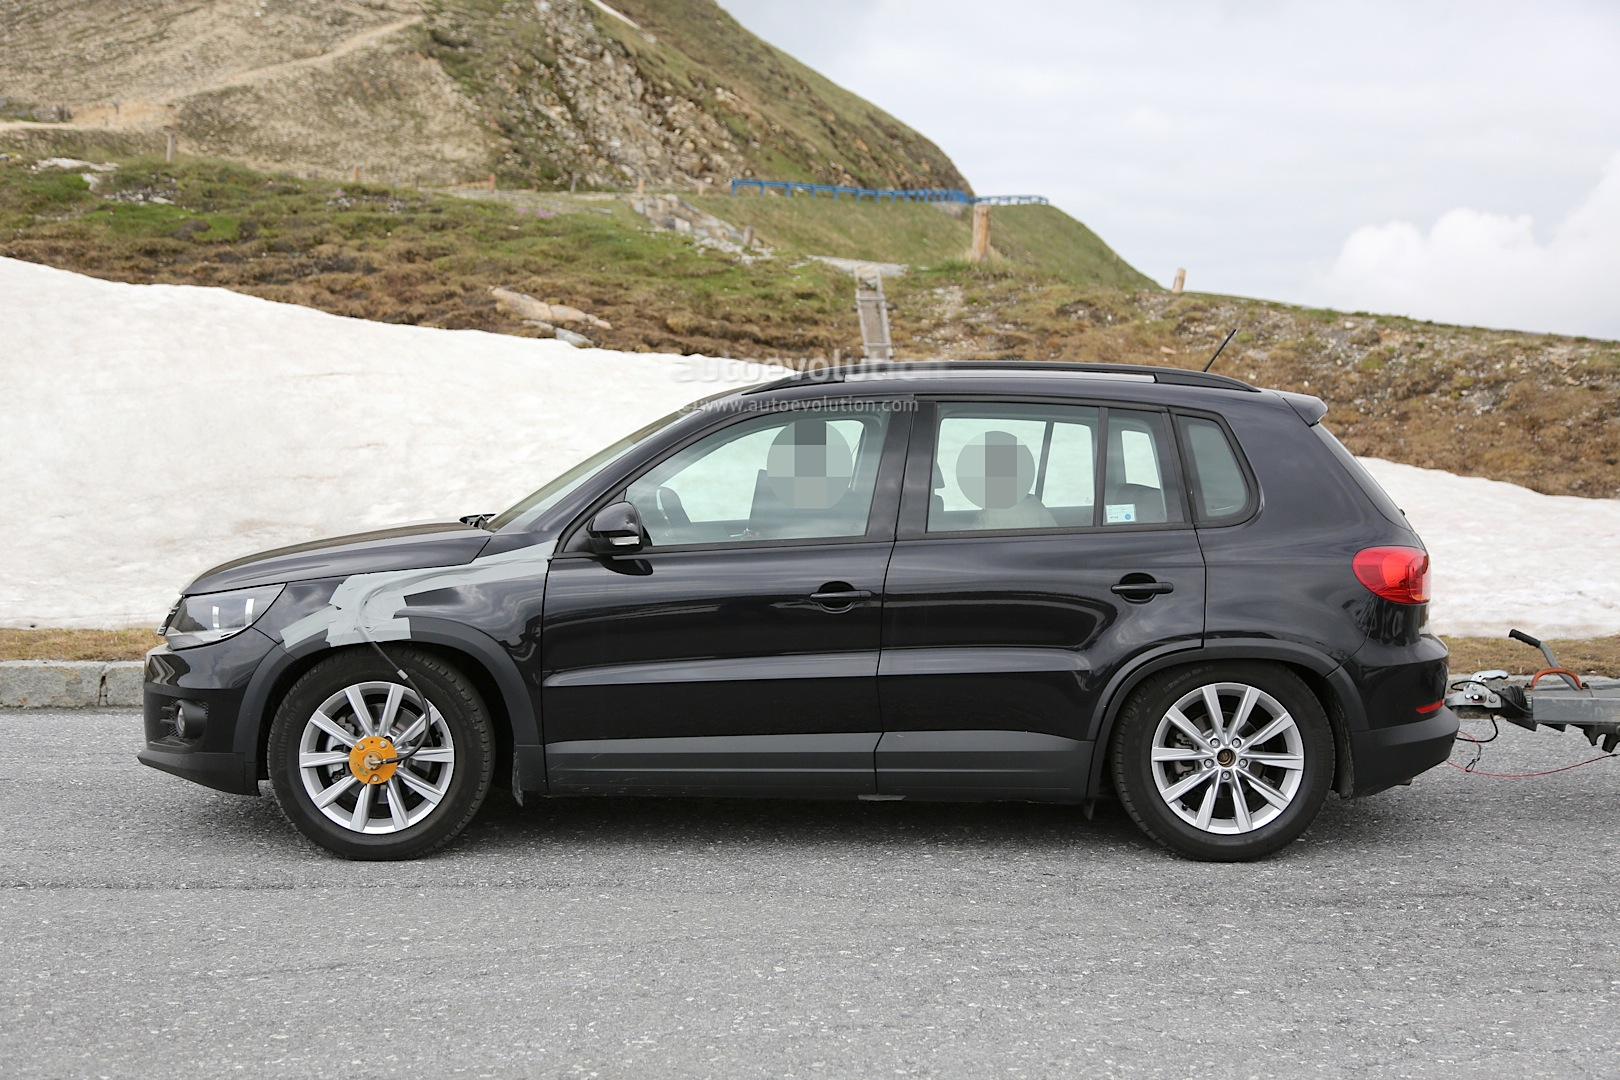 2016 Volkswagen Tiguan Spy Photos First Glimpses Of The